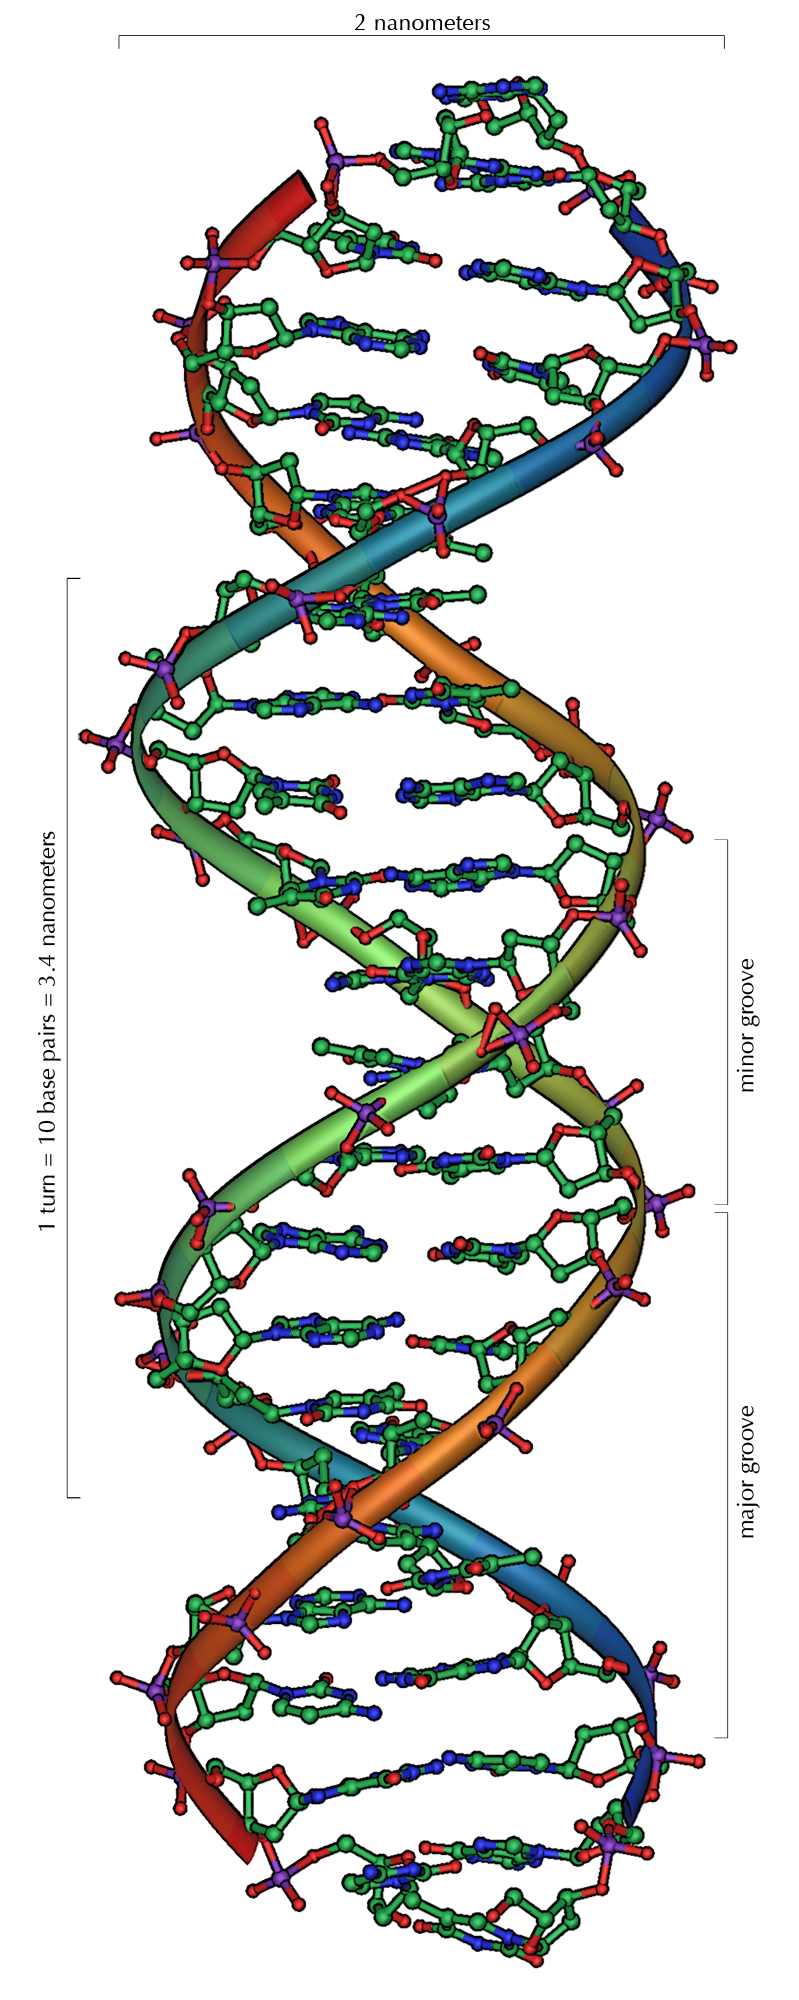 Image shows a diagram of DNA. It is in the form of an alpha helix, each double strand is 2 nanometers wide, and a full turn of the helix is 10 base pairs and measures approximately 3.4 nanometers.